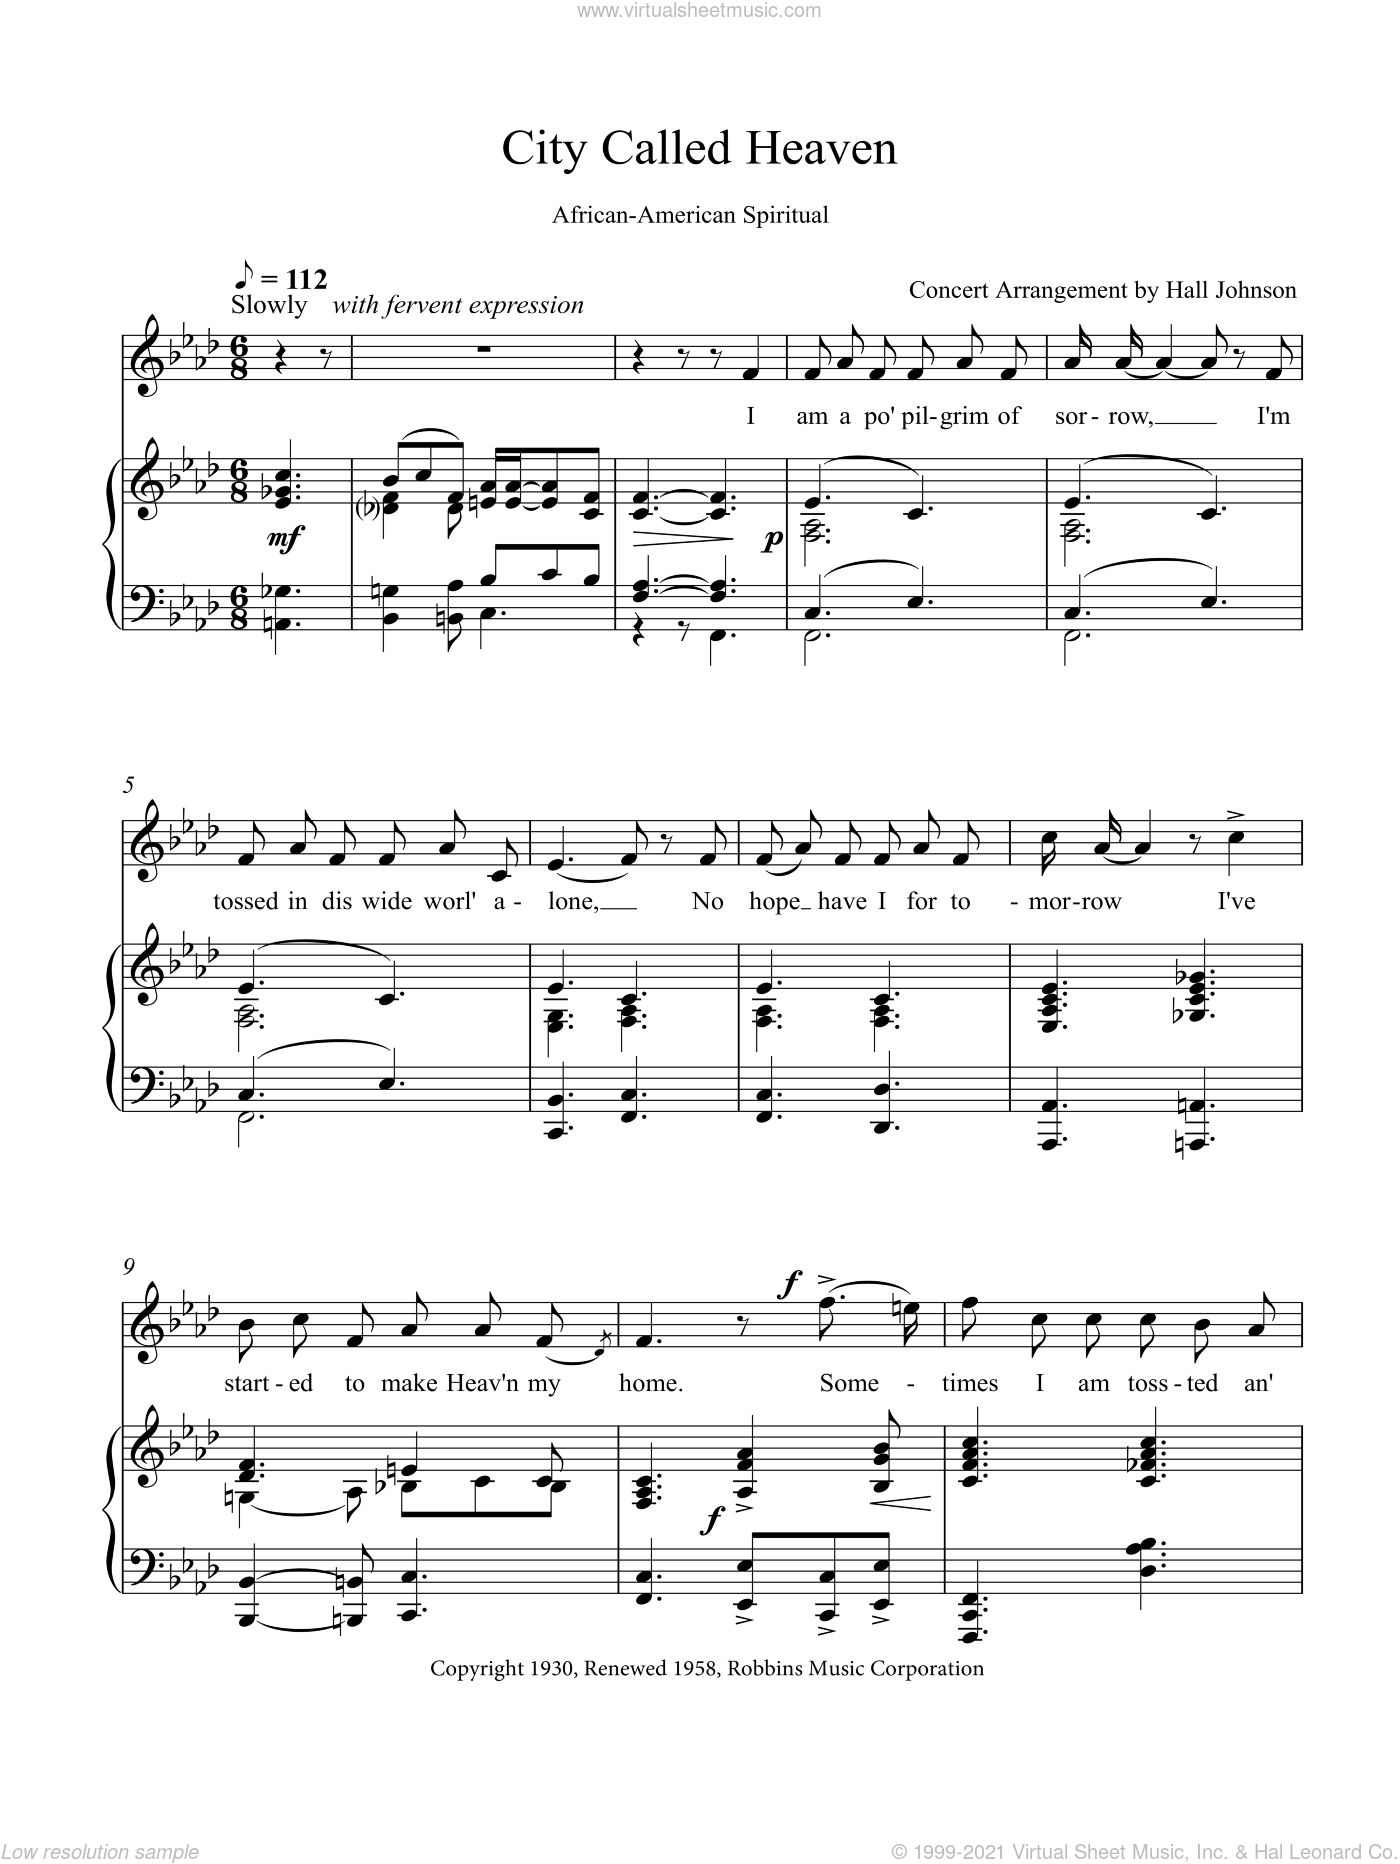 City Called Heaven (F minor) sheet music for voice and piano by Hall Johnson